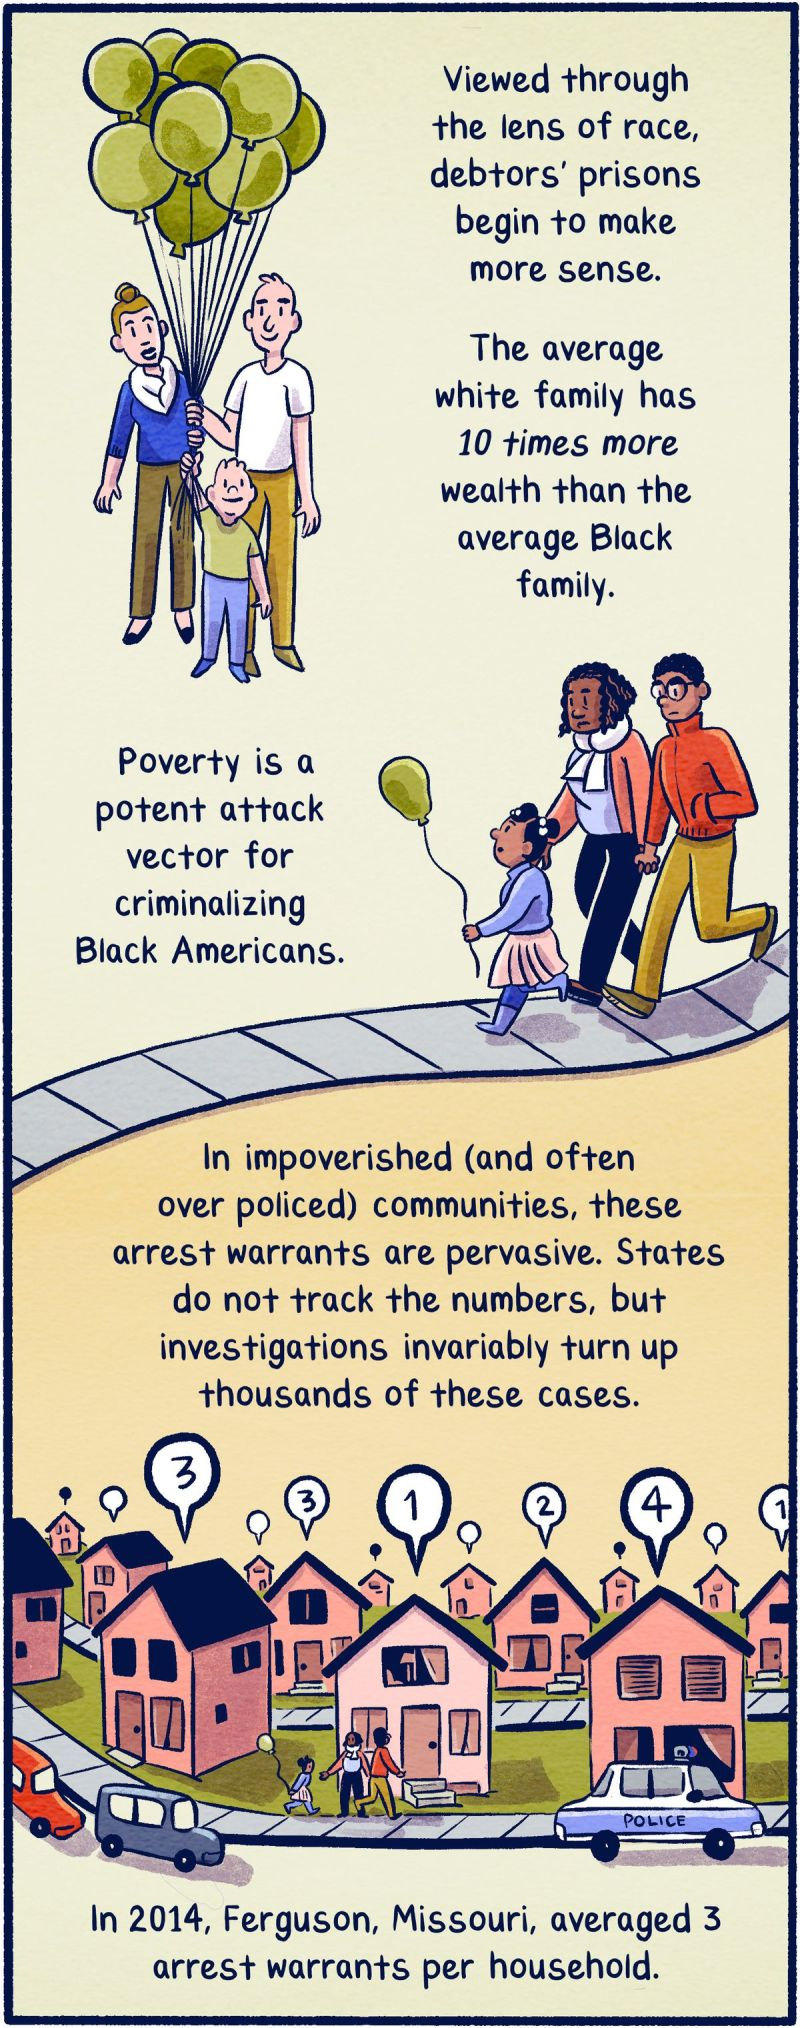 Viewed through the lens of race, debtors' prisons begin to make more sense. The average white family has 10 times more wealth than the average Black family. Poverty is a potent attack vector for criminalizing Black Americans. In impoverished (and often over-policed) communities, these arrest warrants are pervasive. States do not track the numbers, but investigations invariably turn up thousands of these cases. In 2014, Ferguson, Missouri, averaged 3 arrest warrants per household.